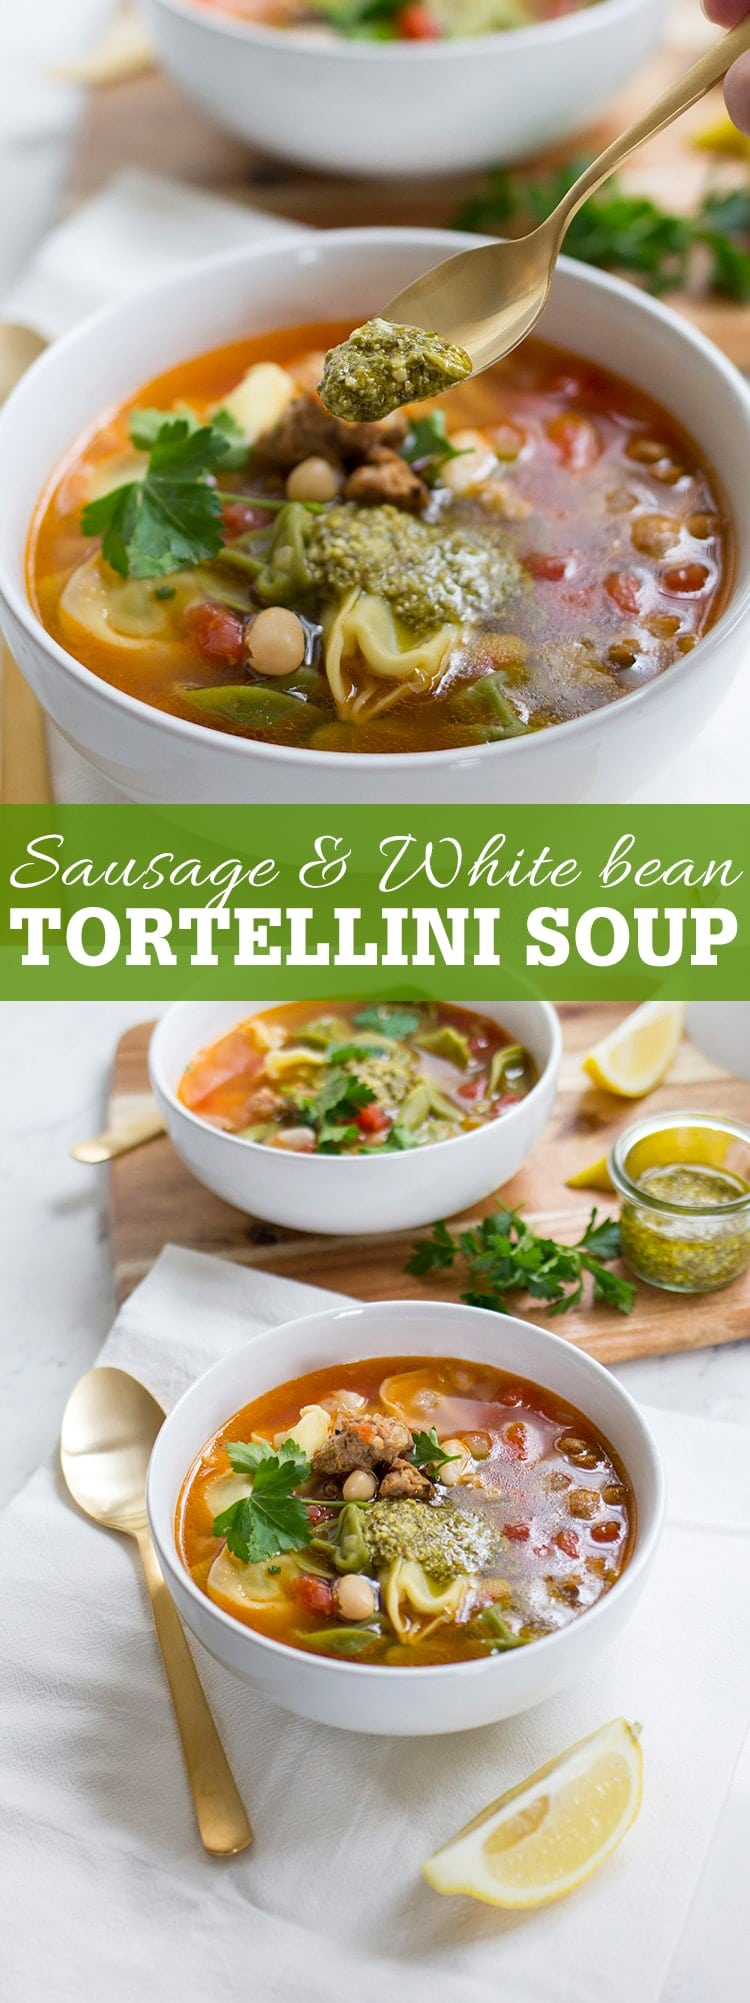 Sausage and white bean tortellini soup with pesto is an easy and comforting weeknight meal!